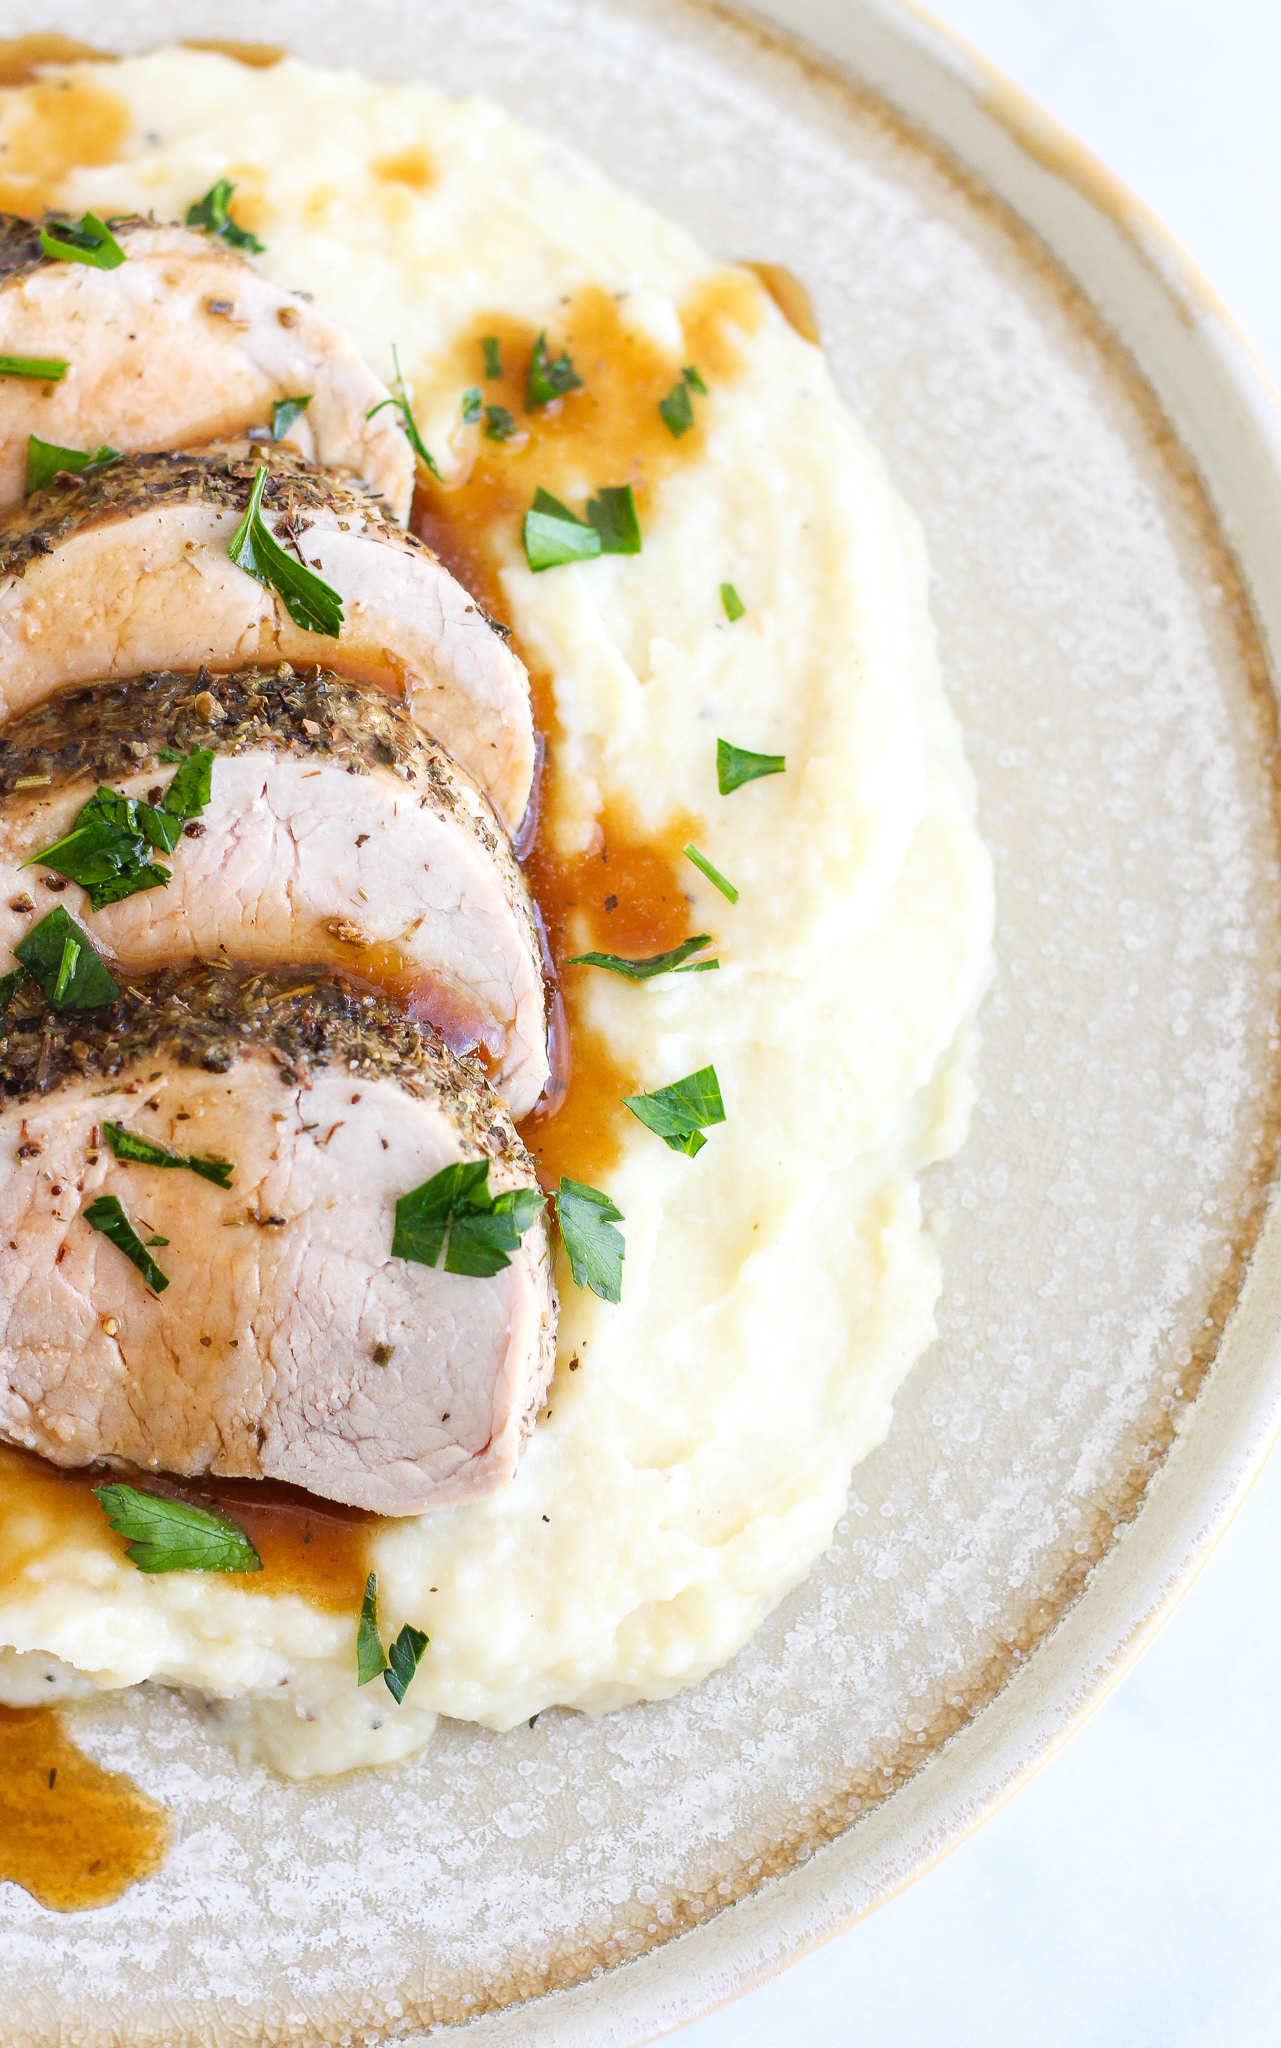 Parsnip puree topped with sliced pork tenderloin and pan sauce